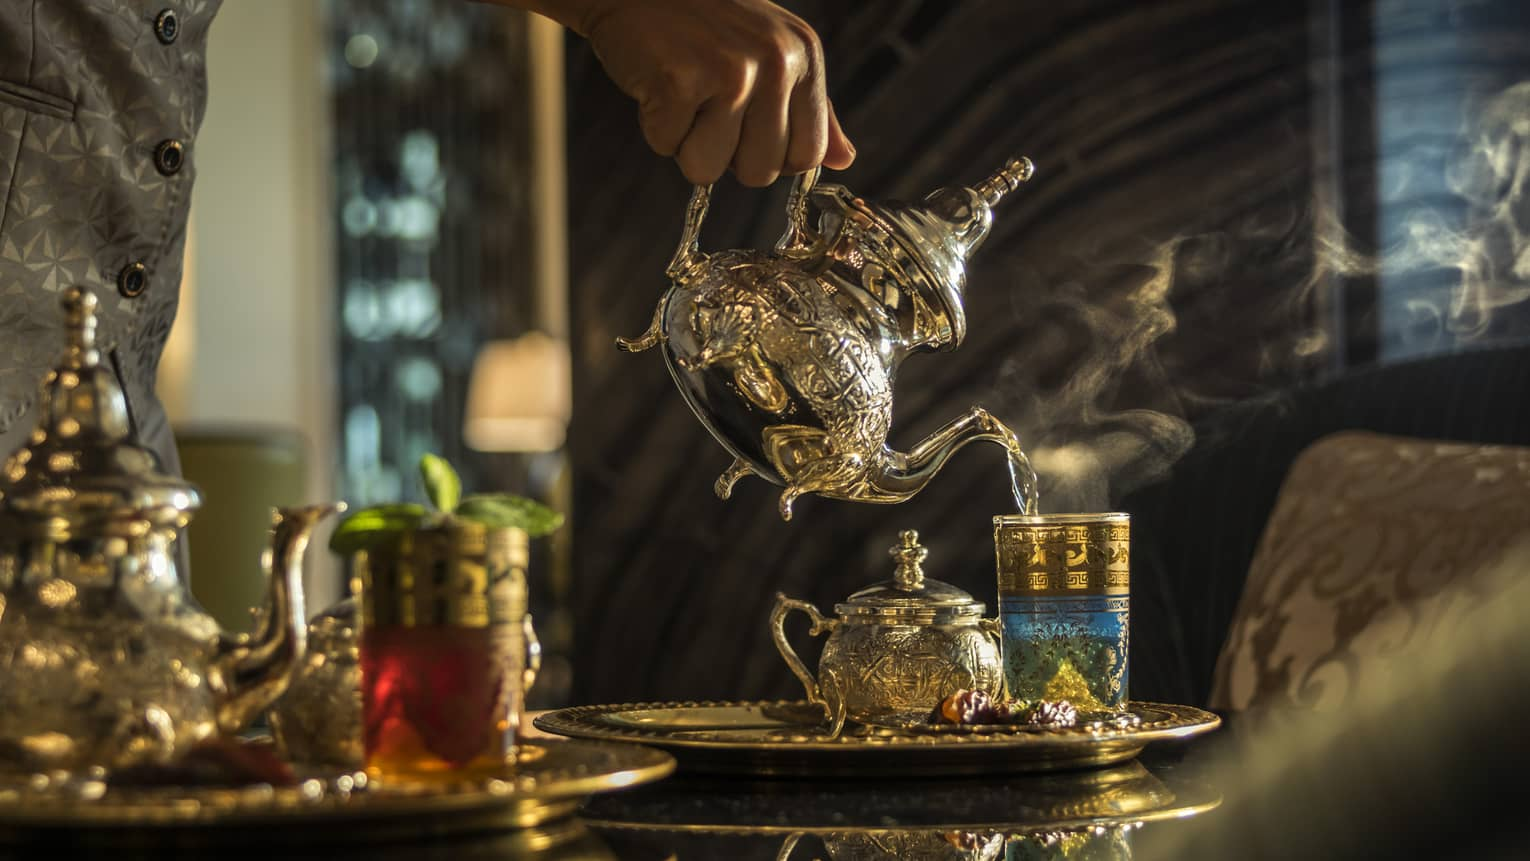 Hand pouring tea from Moroccan-style teapot into glass on tray